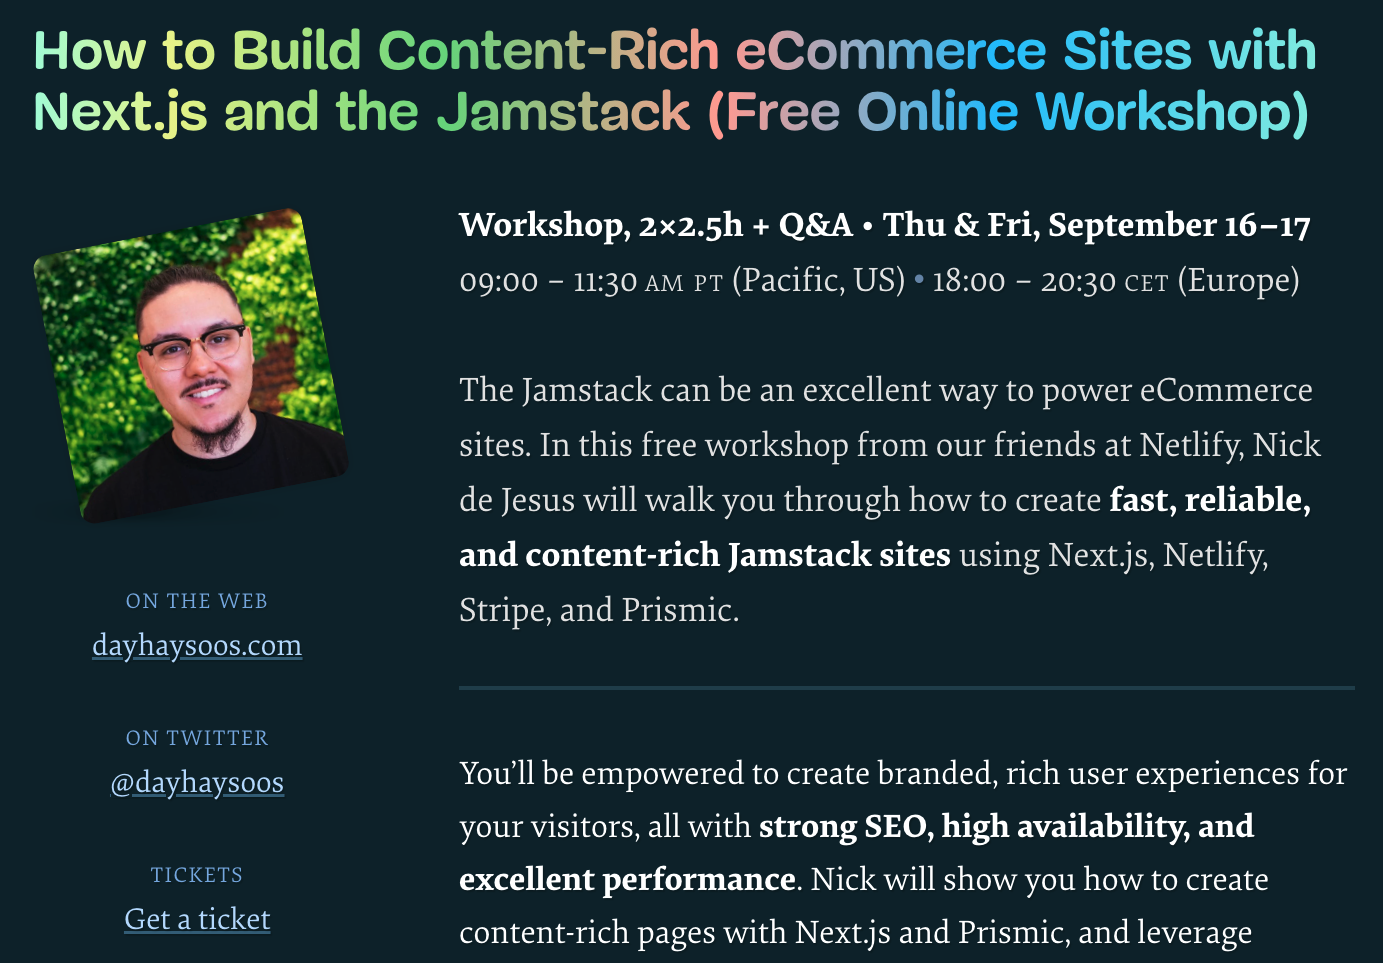 How to Build Content-Rich eCommerce Sites with Next.js and the Jamstack